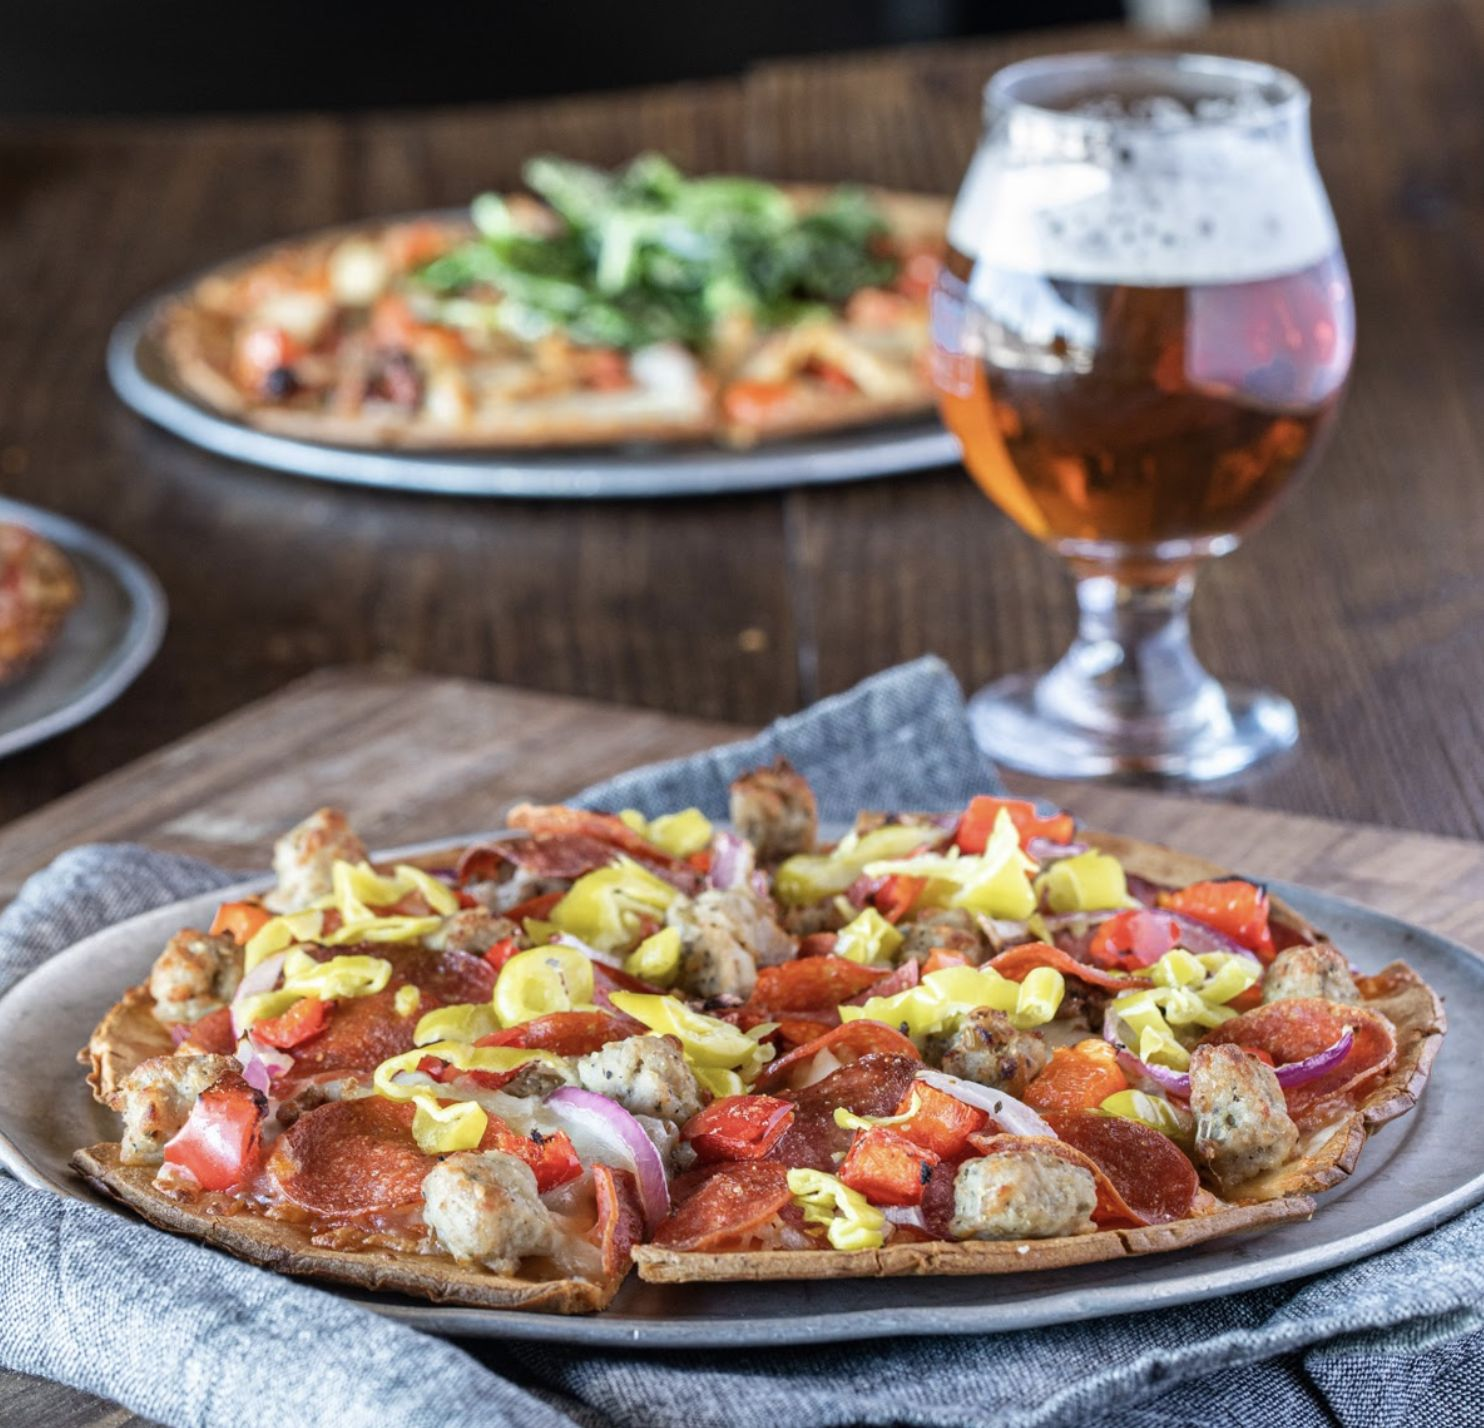 Old Chicago Pizza & Taproom Partners with CAULIPOWER to Debut Cauliflower Crust